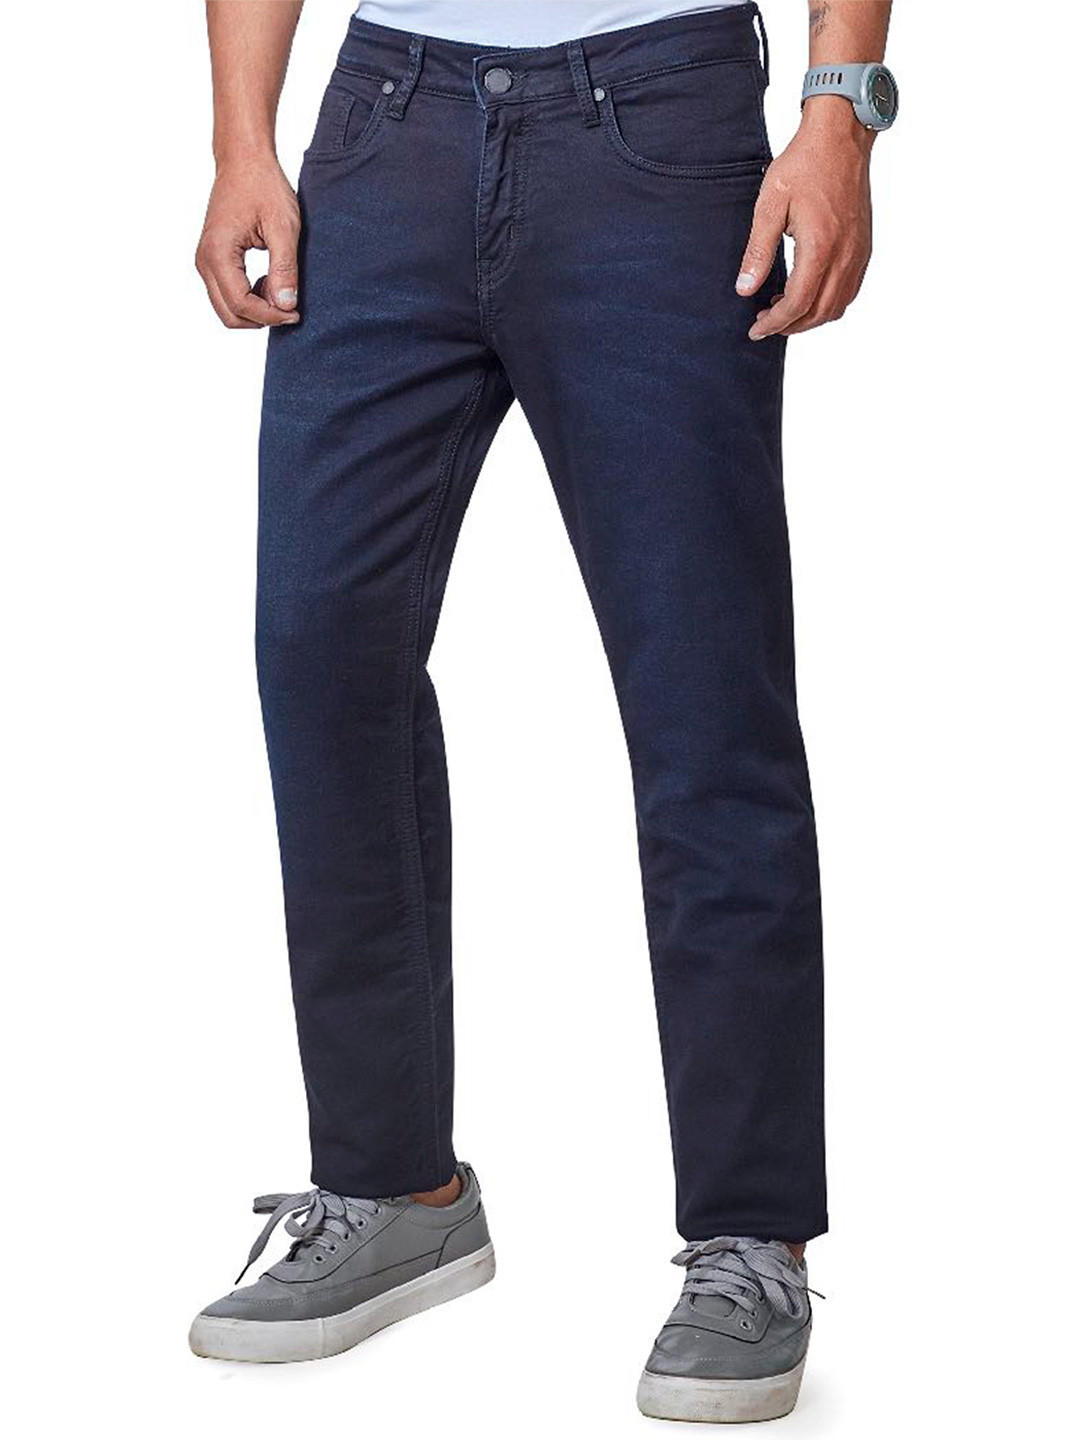 Dragon Hill navy solid mens jeans?imgeng=w_400